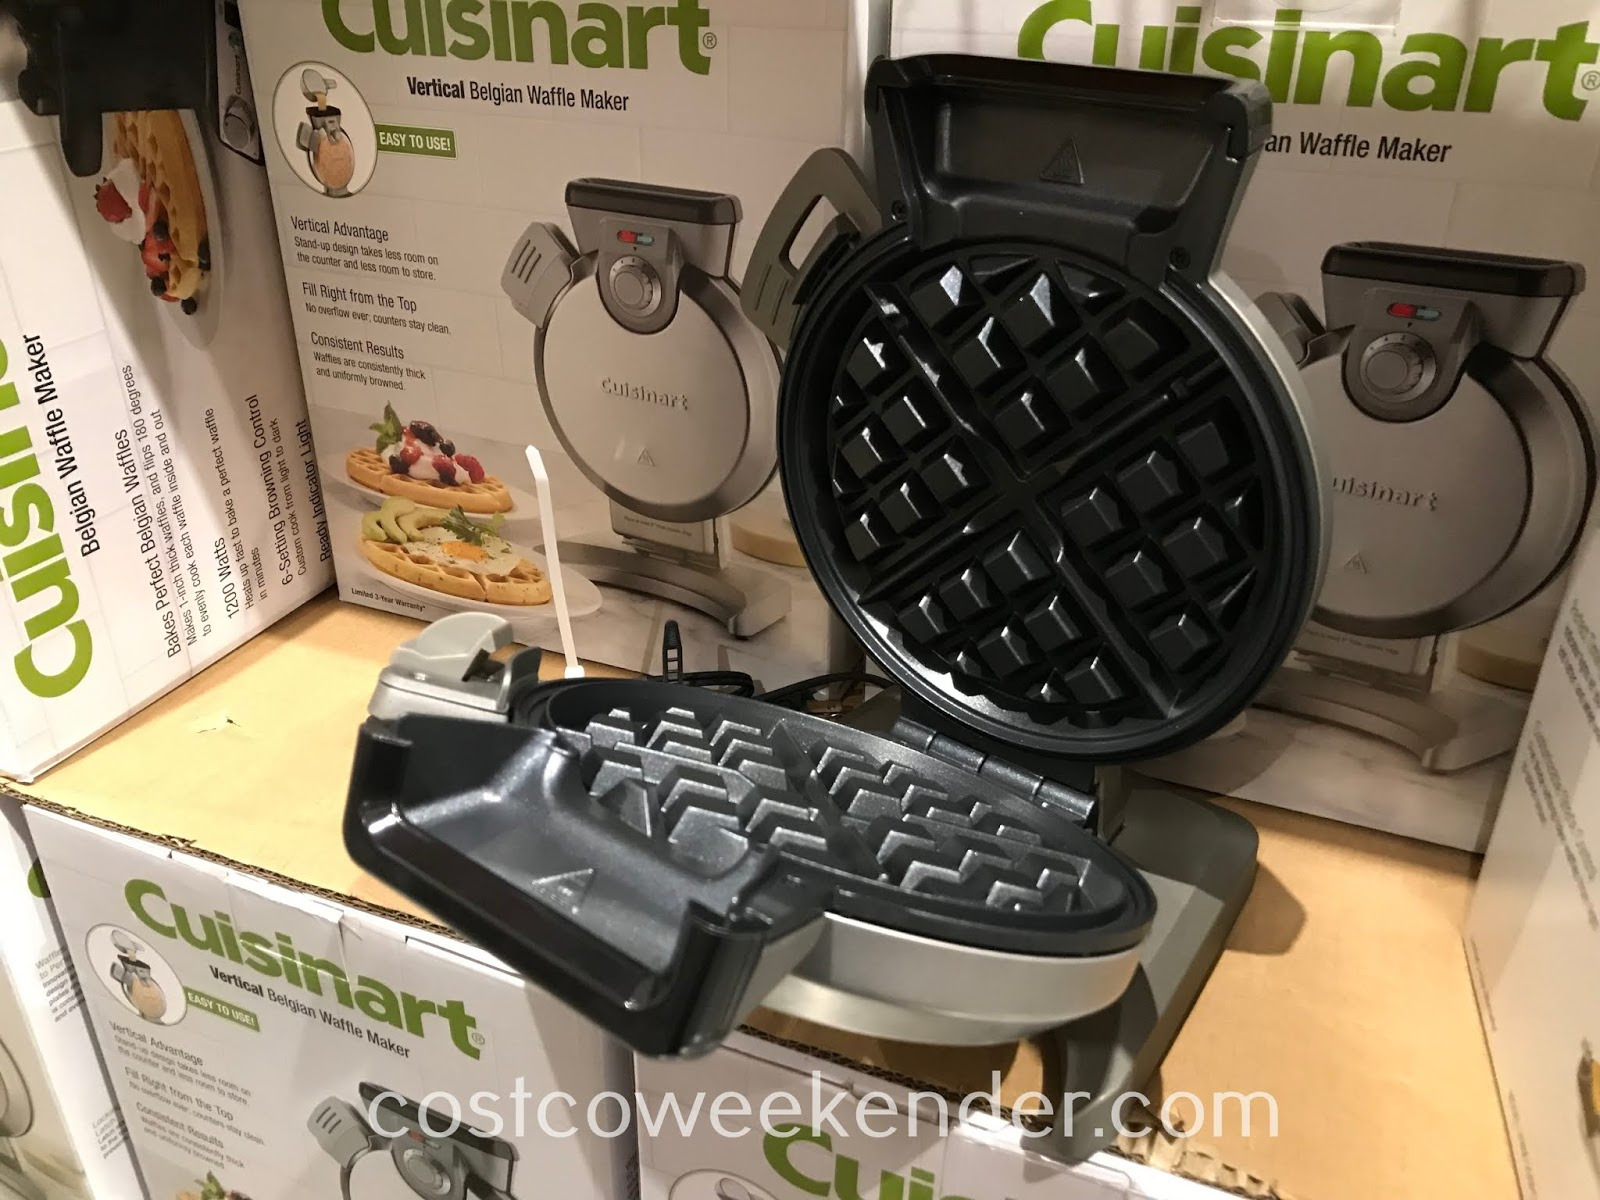 You won't want to skip the most important meal of the day with the Cuisinart Vertical Belgian Waffle Maker